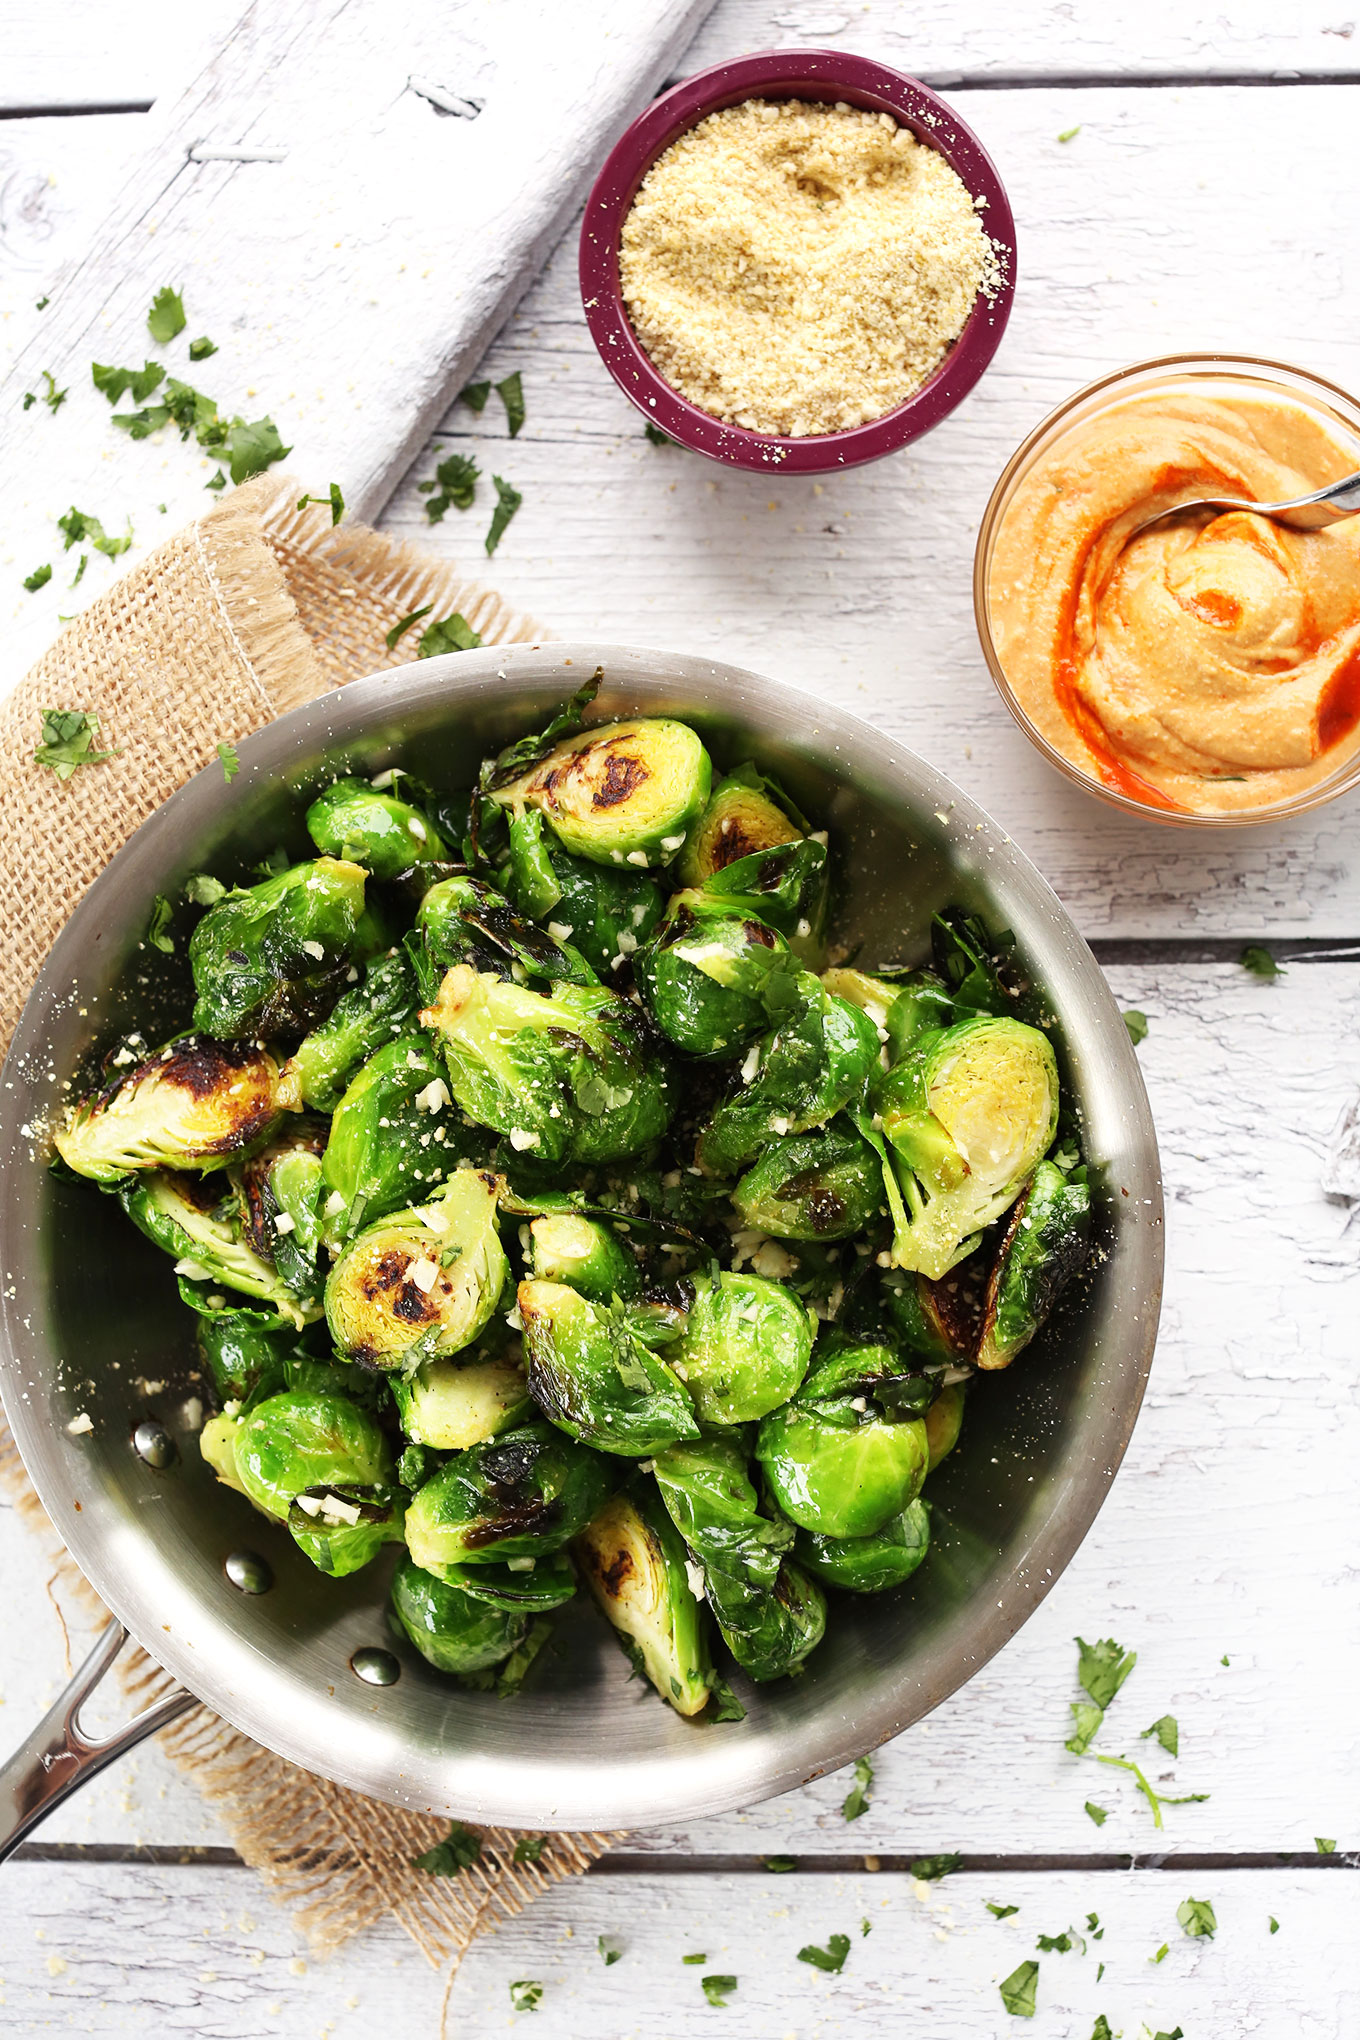 Precious A Bite Sriracha Aioli Tender 30 Minute Crispy Brussels Sprouts Appetzier Or Healthier Side Dish Vegan Glutenfree How Long To Cook Brussel Sprouts How Long To Cook Brussel Sprouts On Stove nice food How Long To Steam Brussel Sprouts